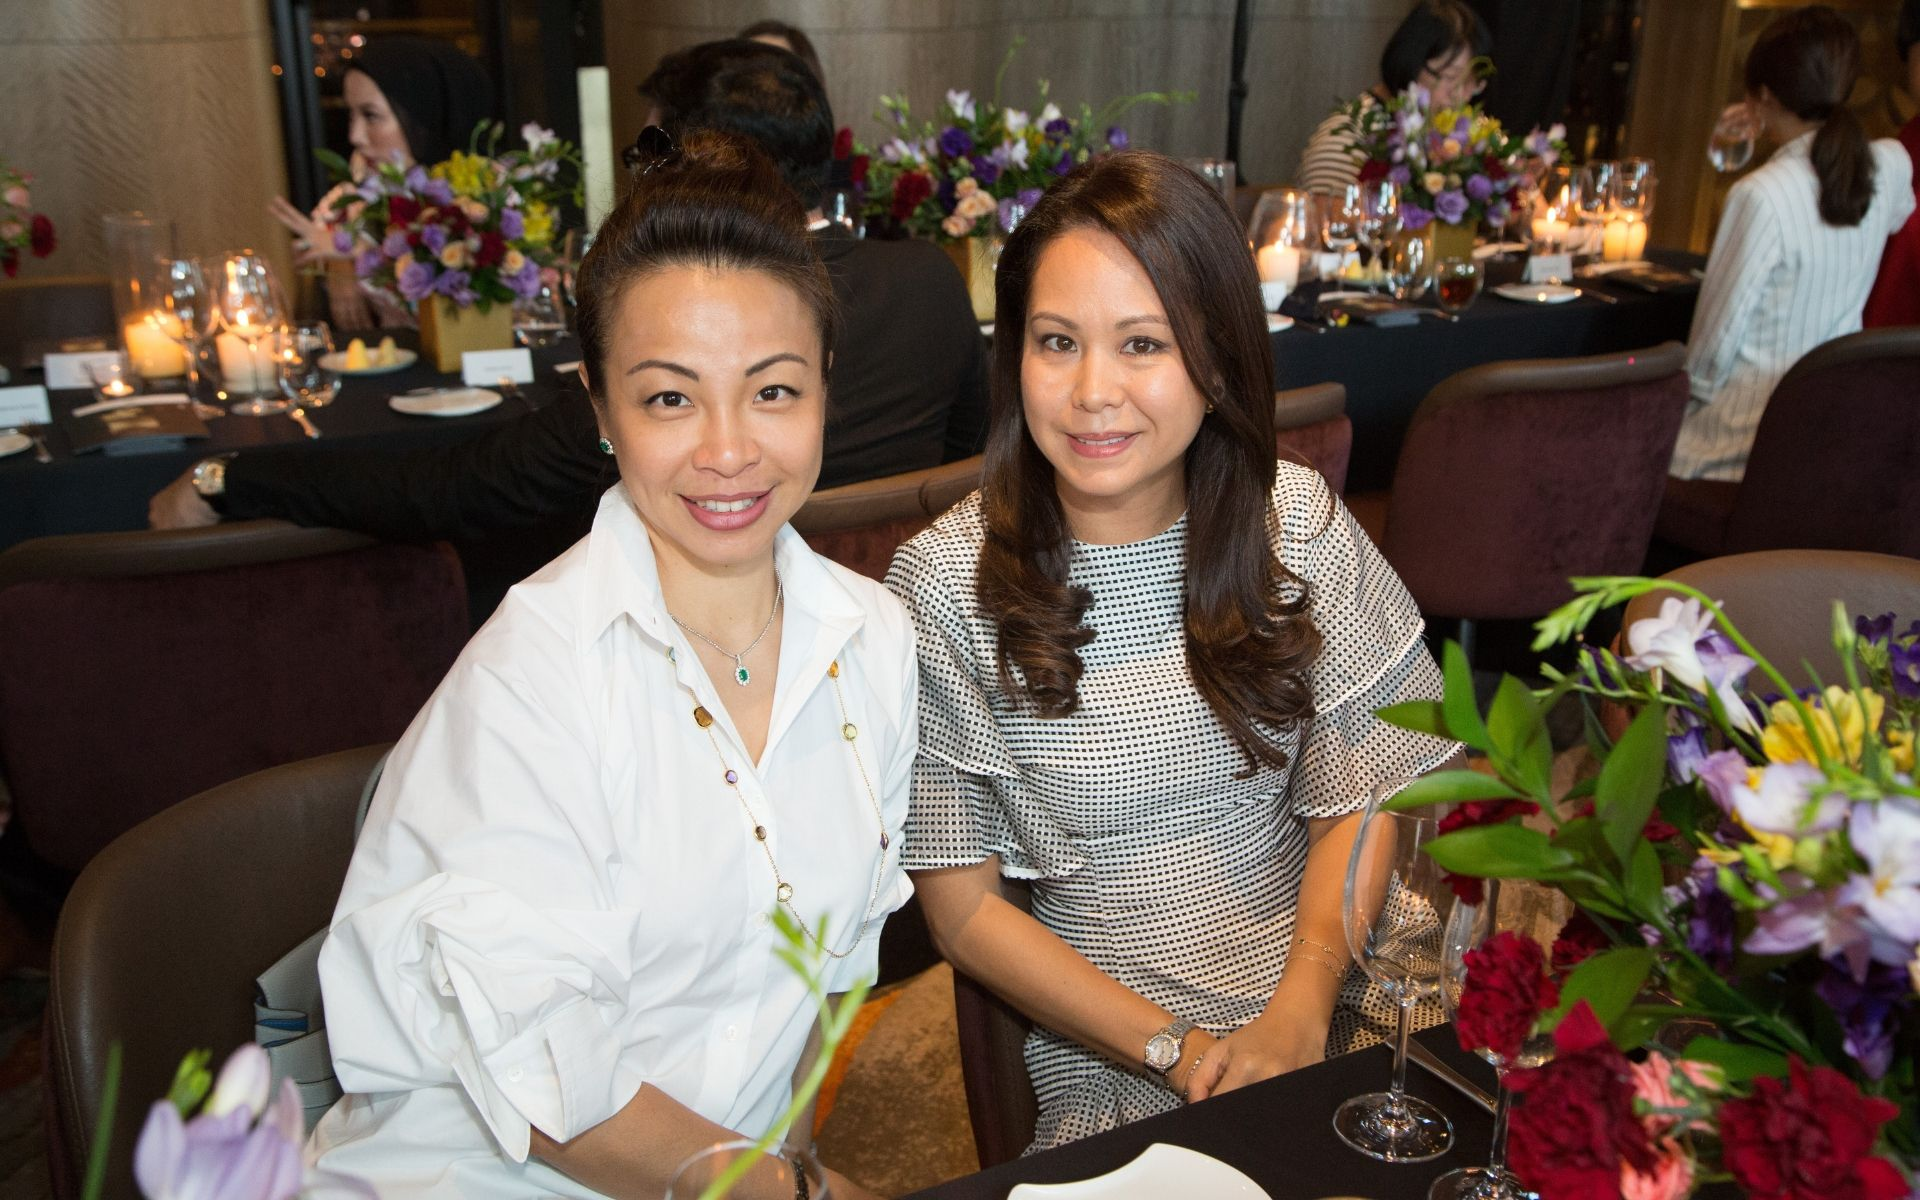 Elizabeth Hew Marini and Bianca Indot